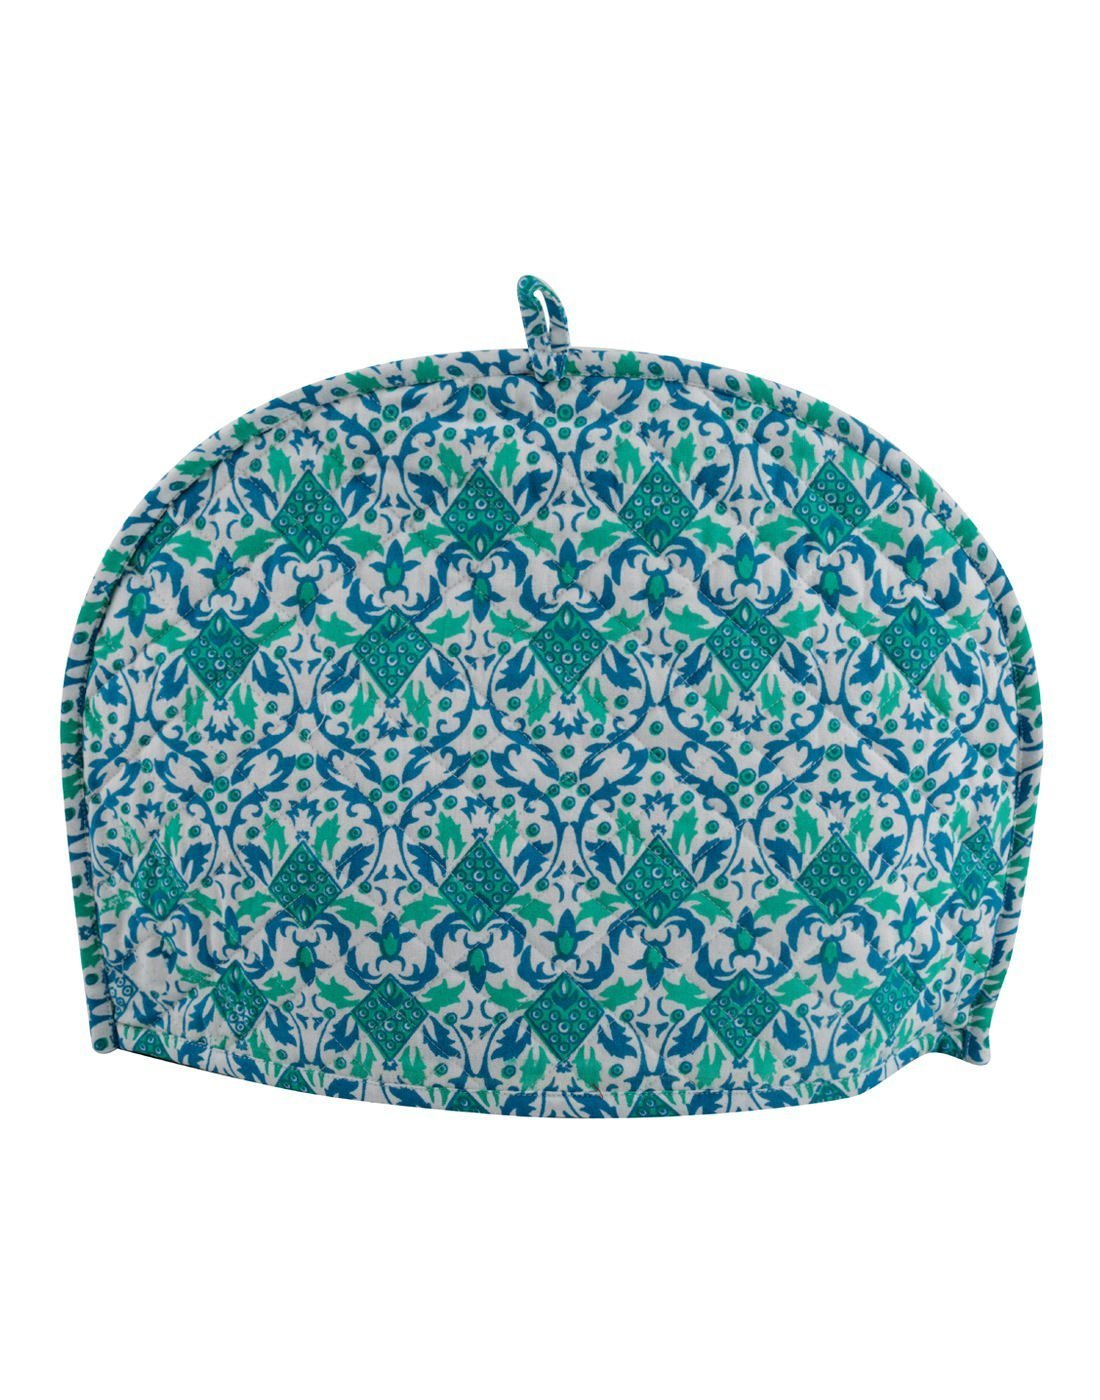 Exclusive Indian Tea Cozy Washable Vintage Tea Cosy Traditional Printed Tea Cozy By Janki Creation